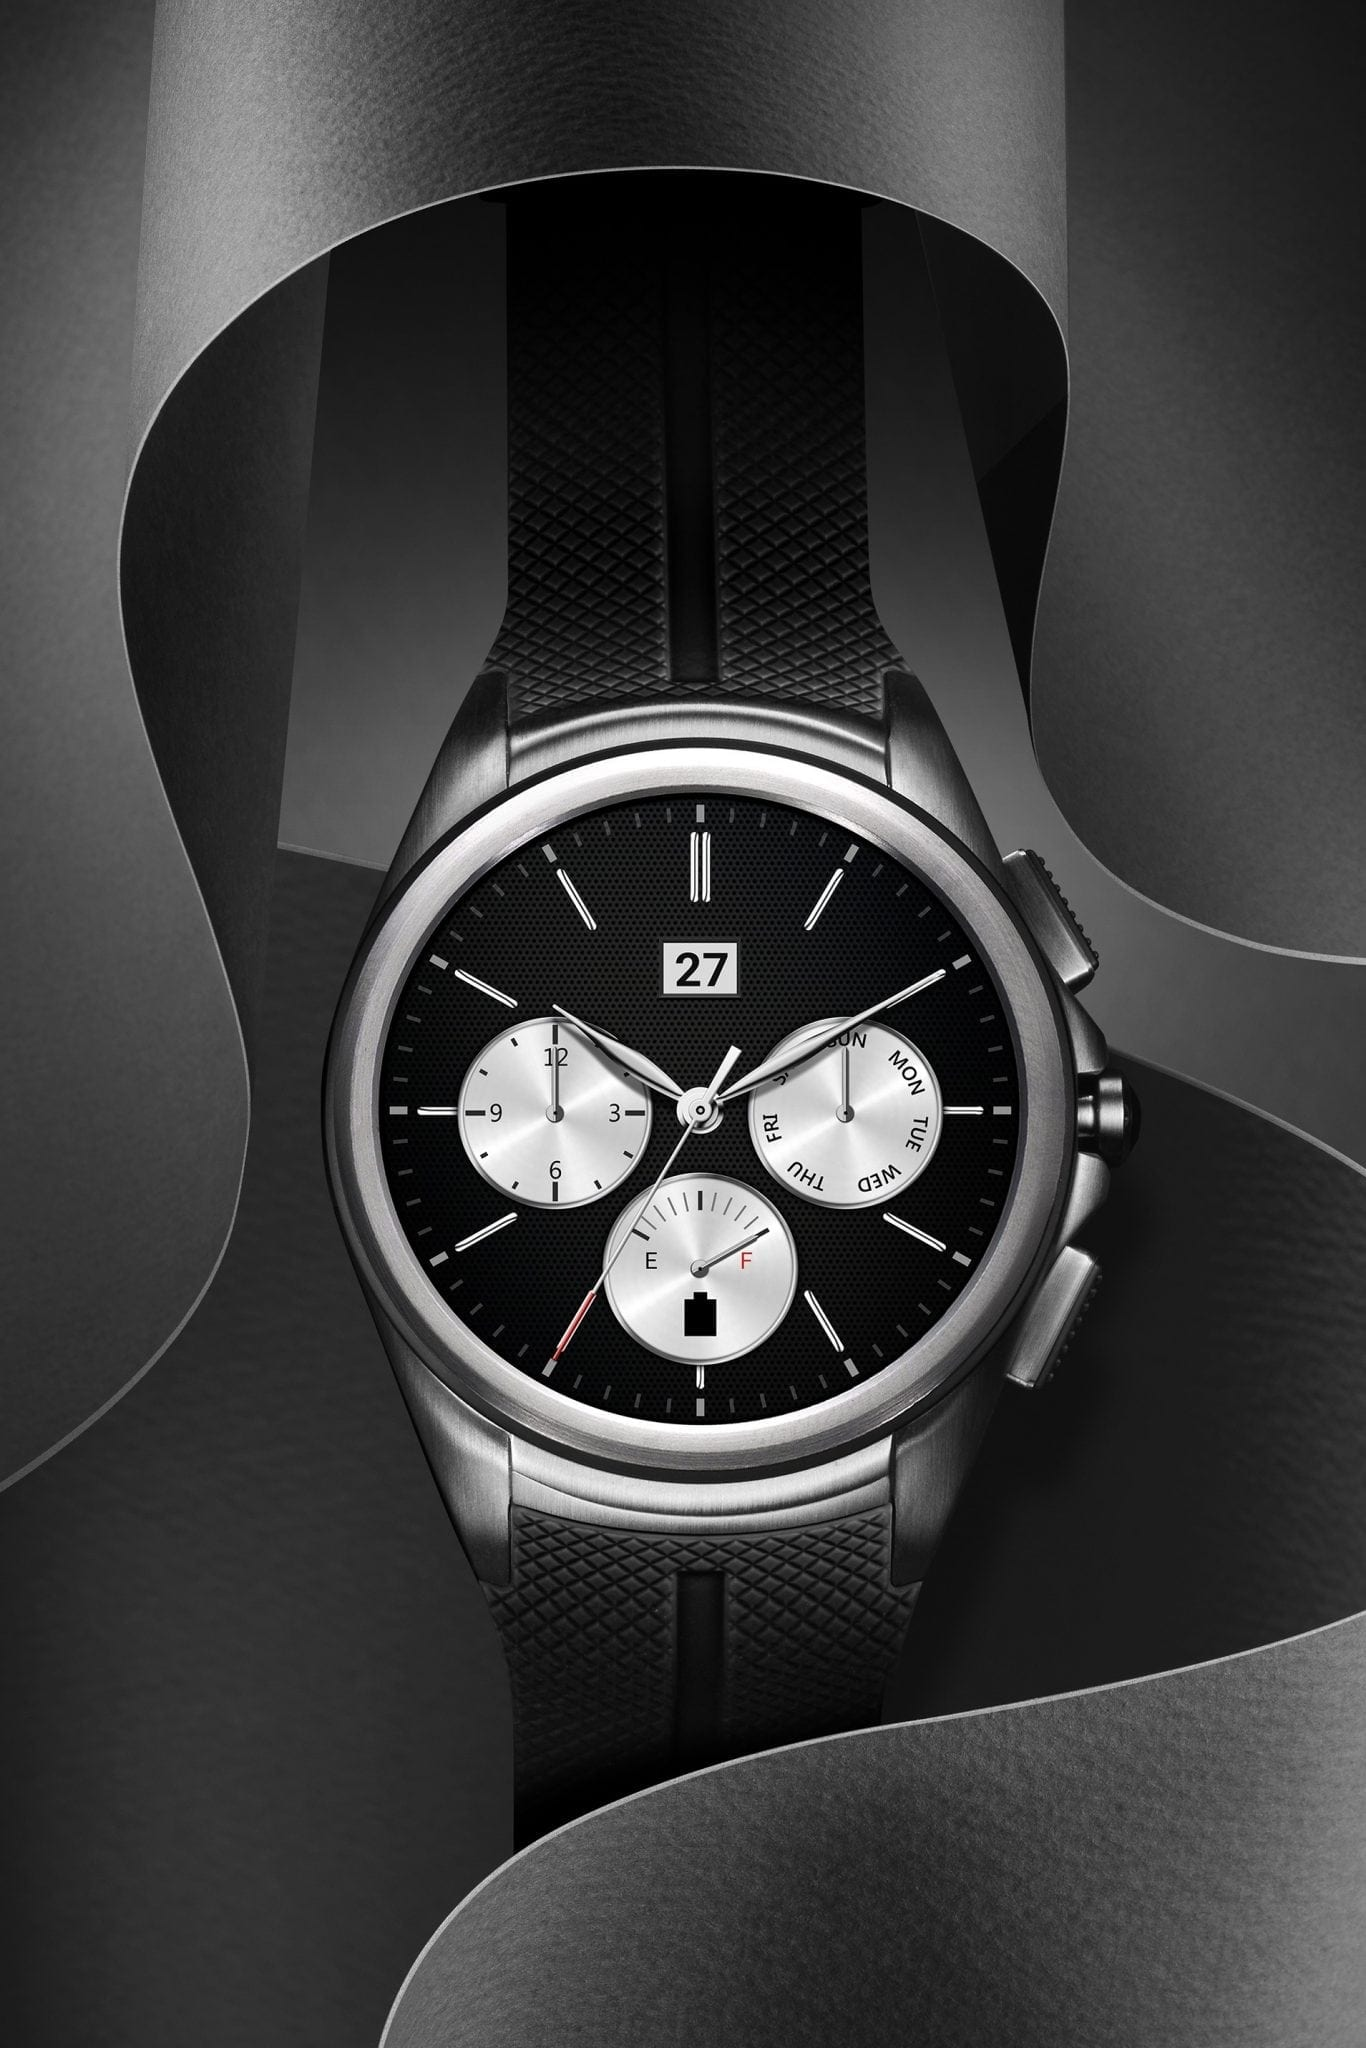 LG-Watch-Urbane-2nd-Edition-02